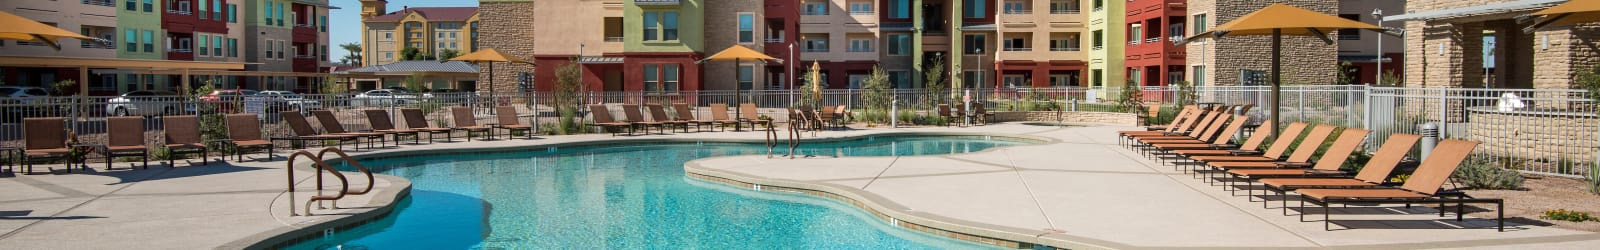 Reviews at Southern Avenue Villas in Mesa, Arizona